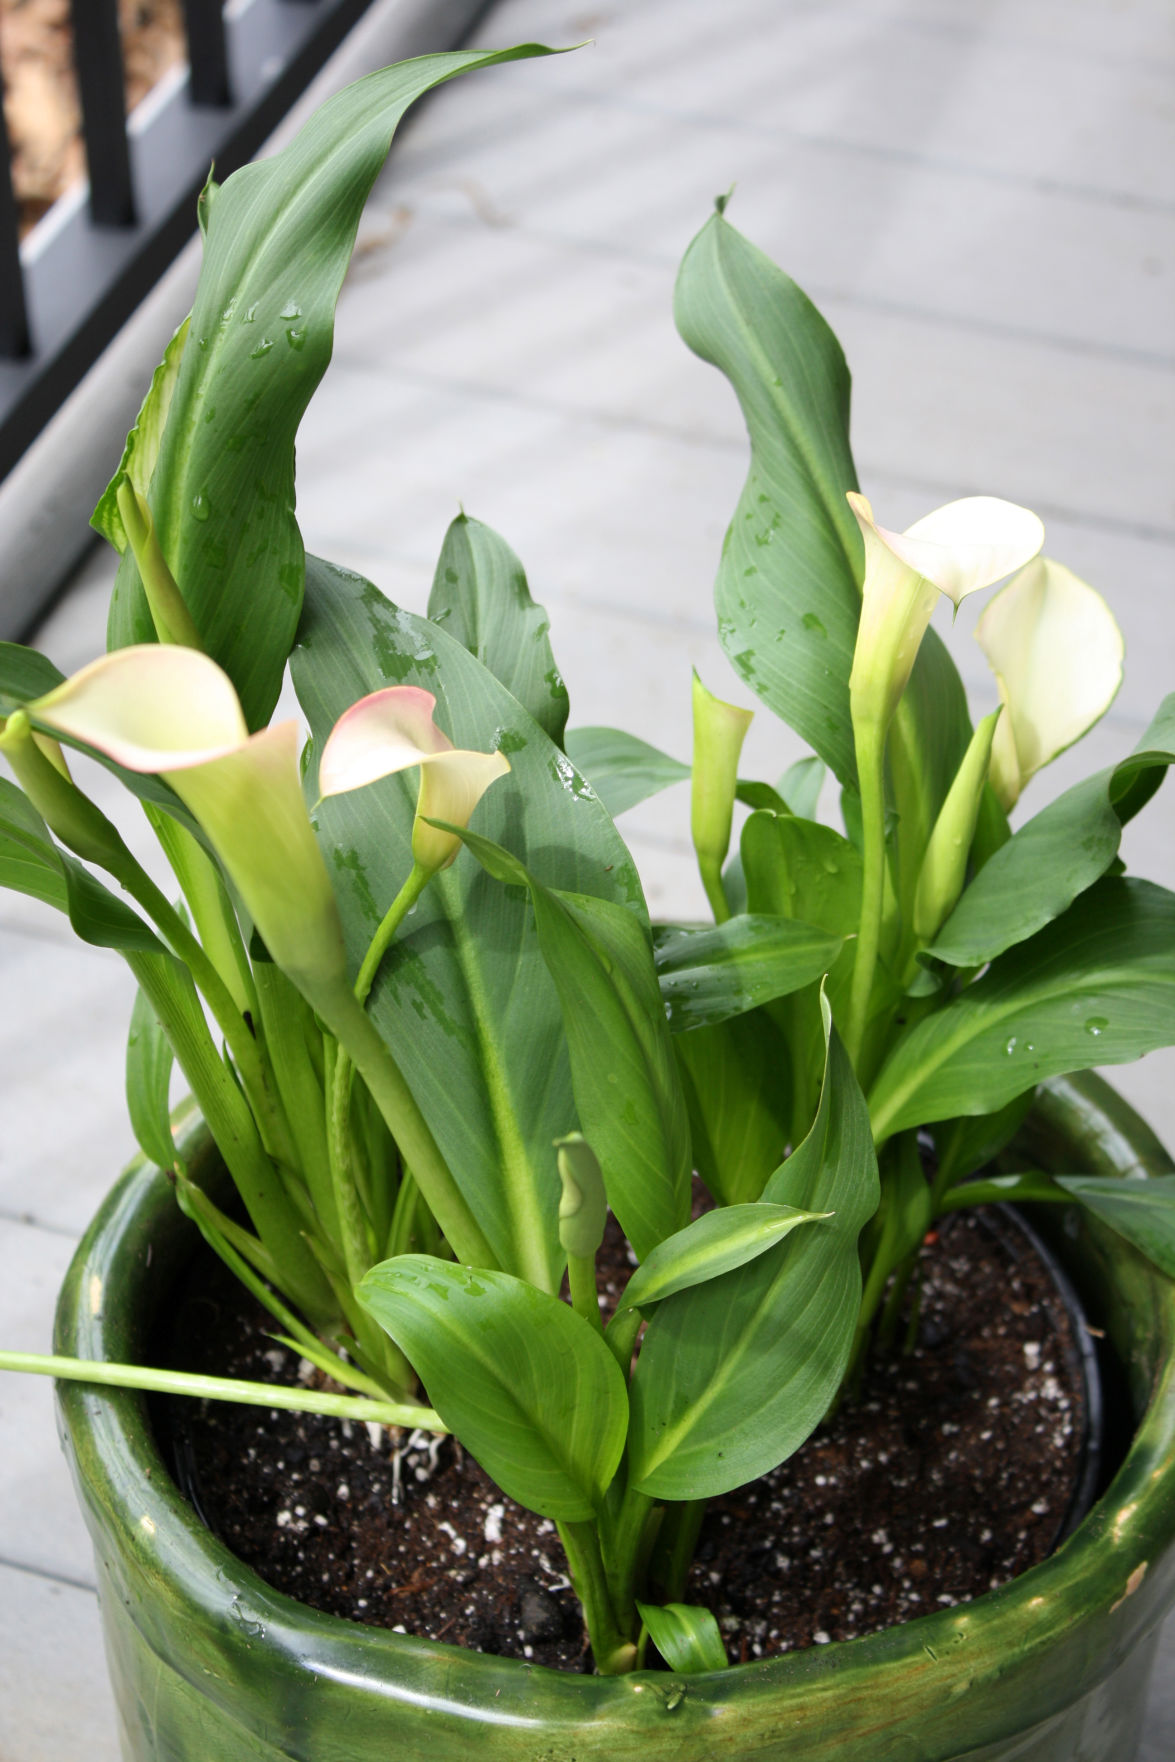 Riggenbach needs differ for two types of calla lilies living needs differ for two types of calla lilies buy now izmirmasajfo